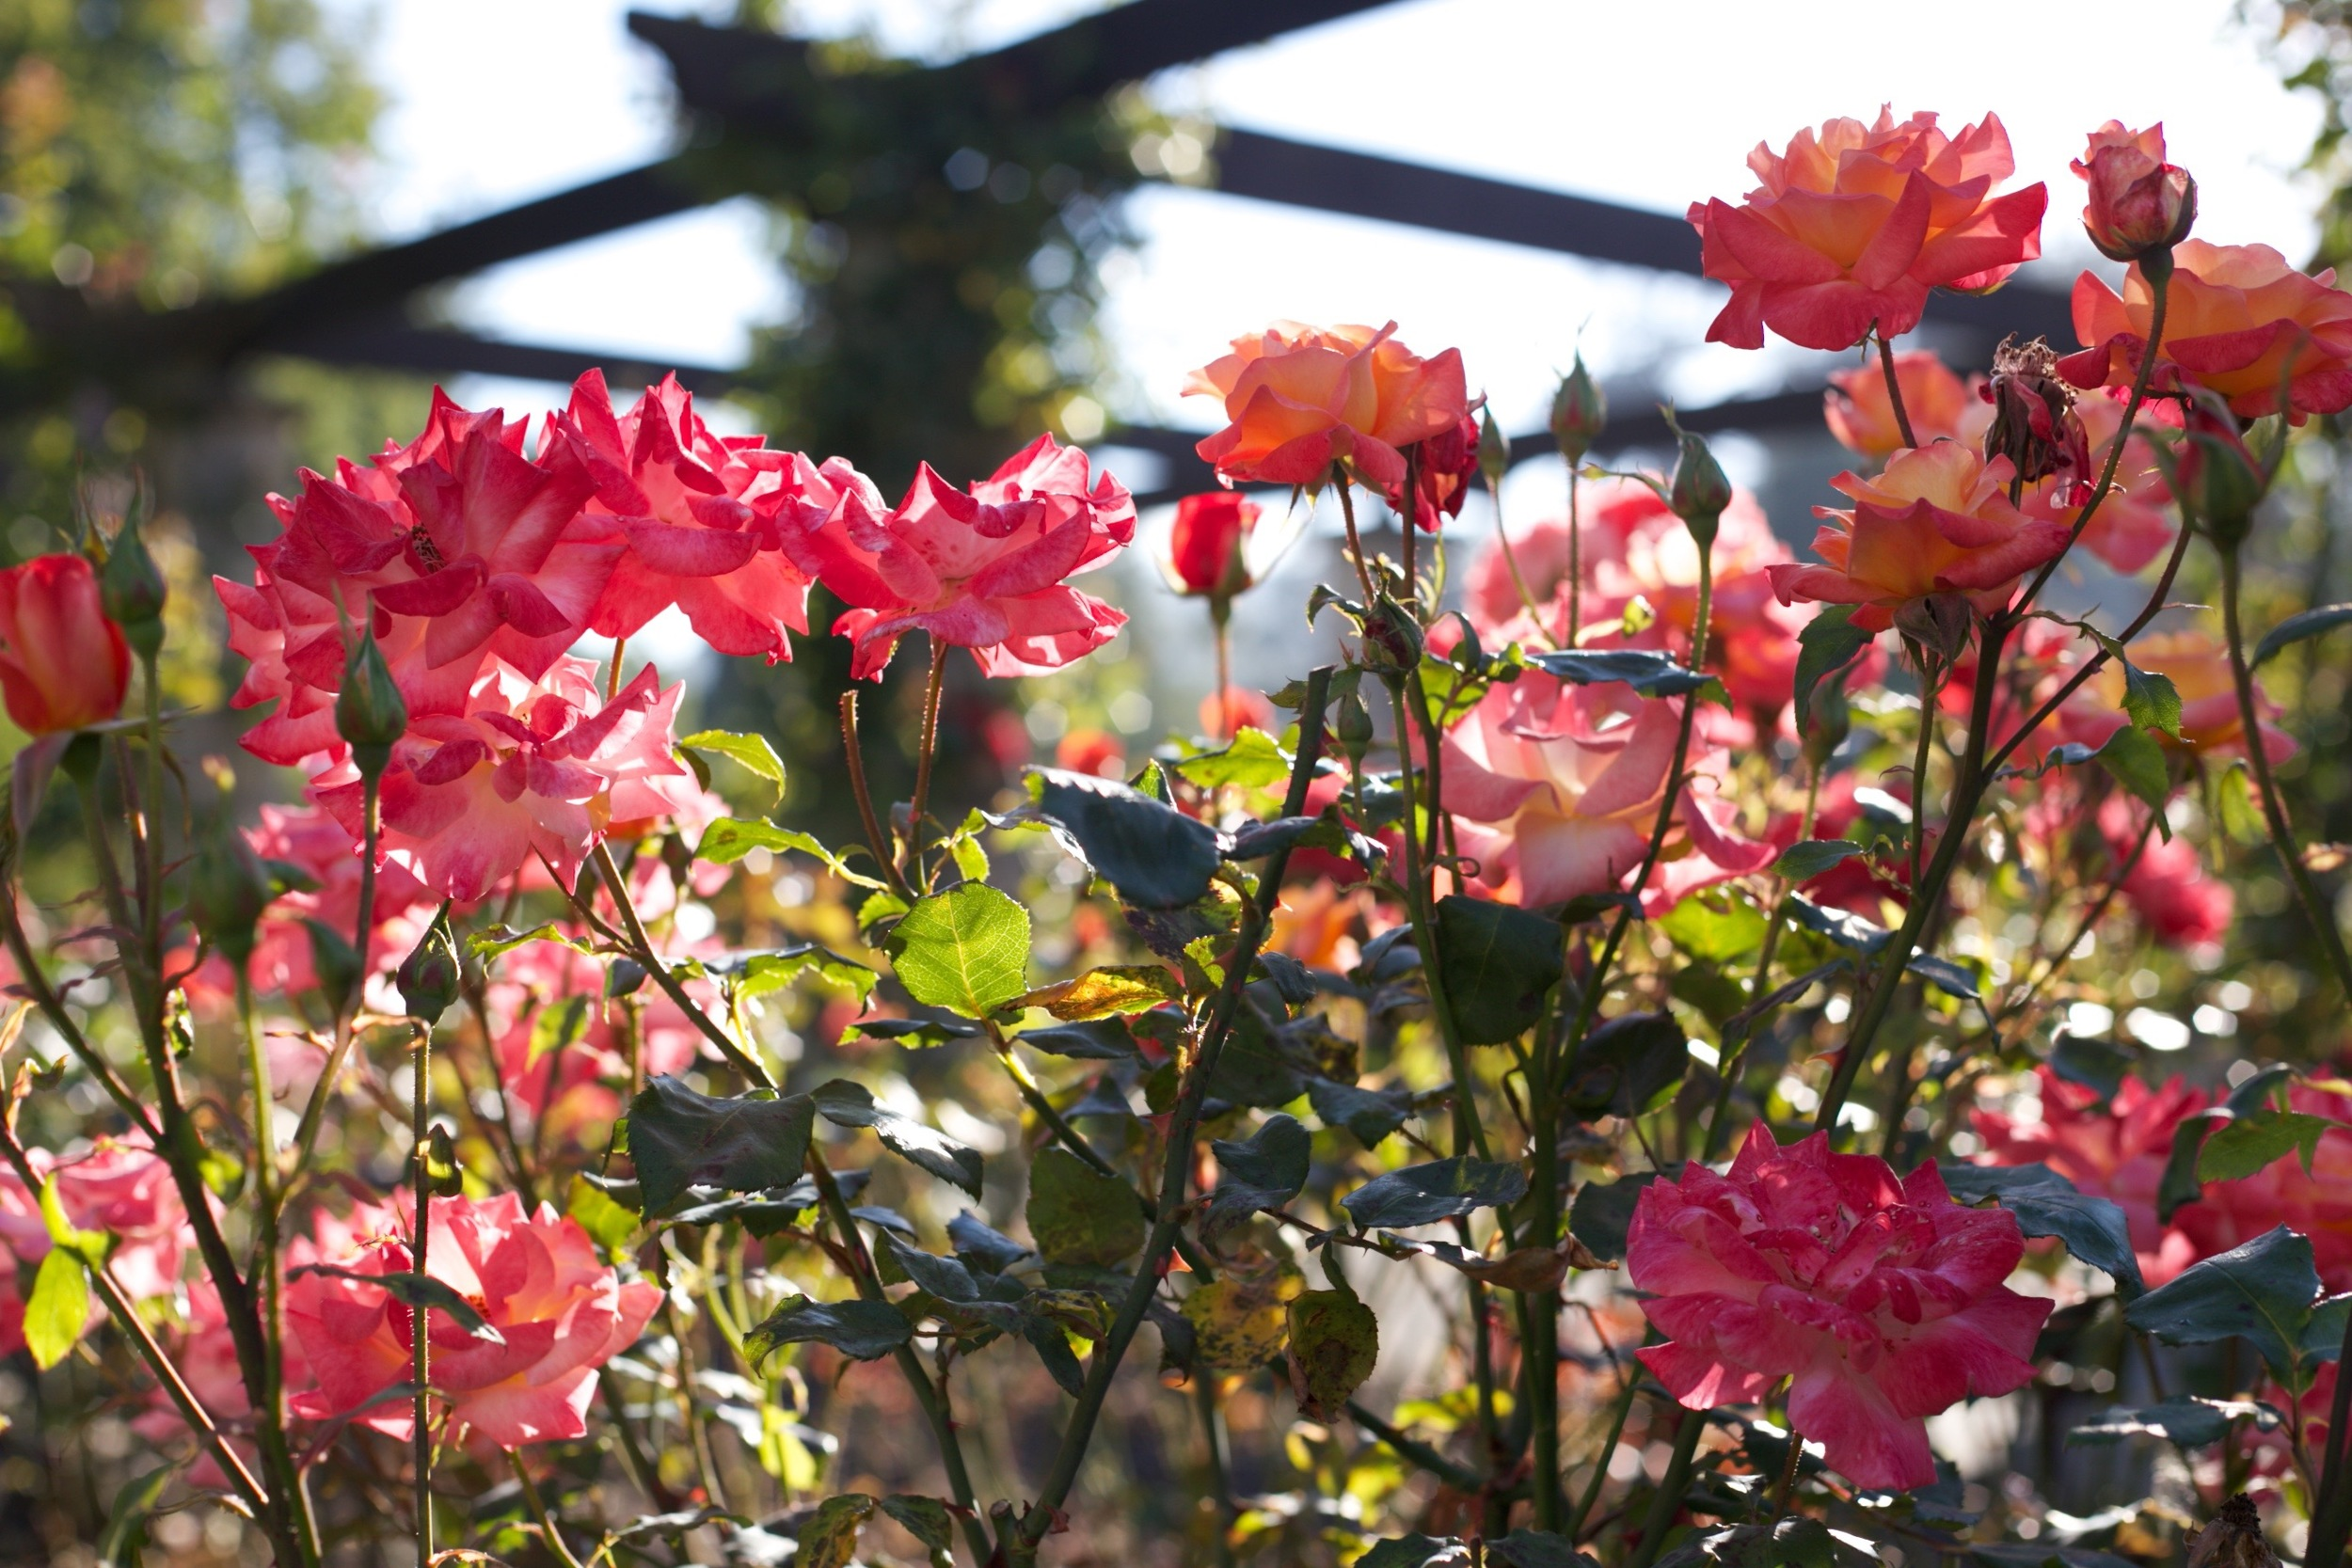 Pink and peach rose garden in the morning light